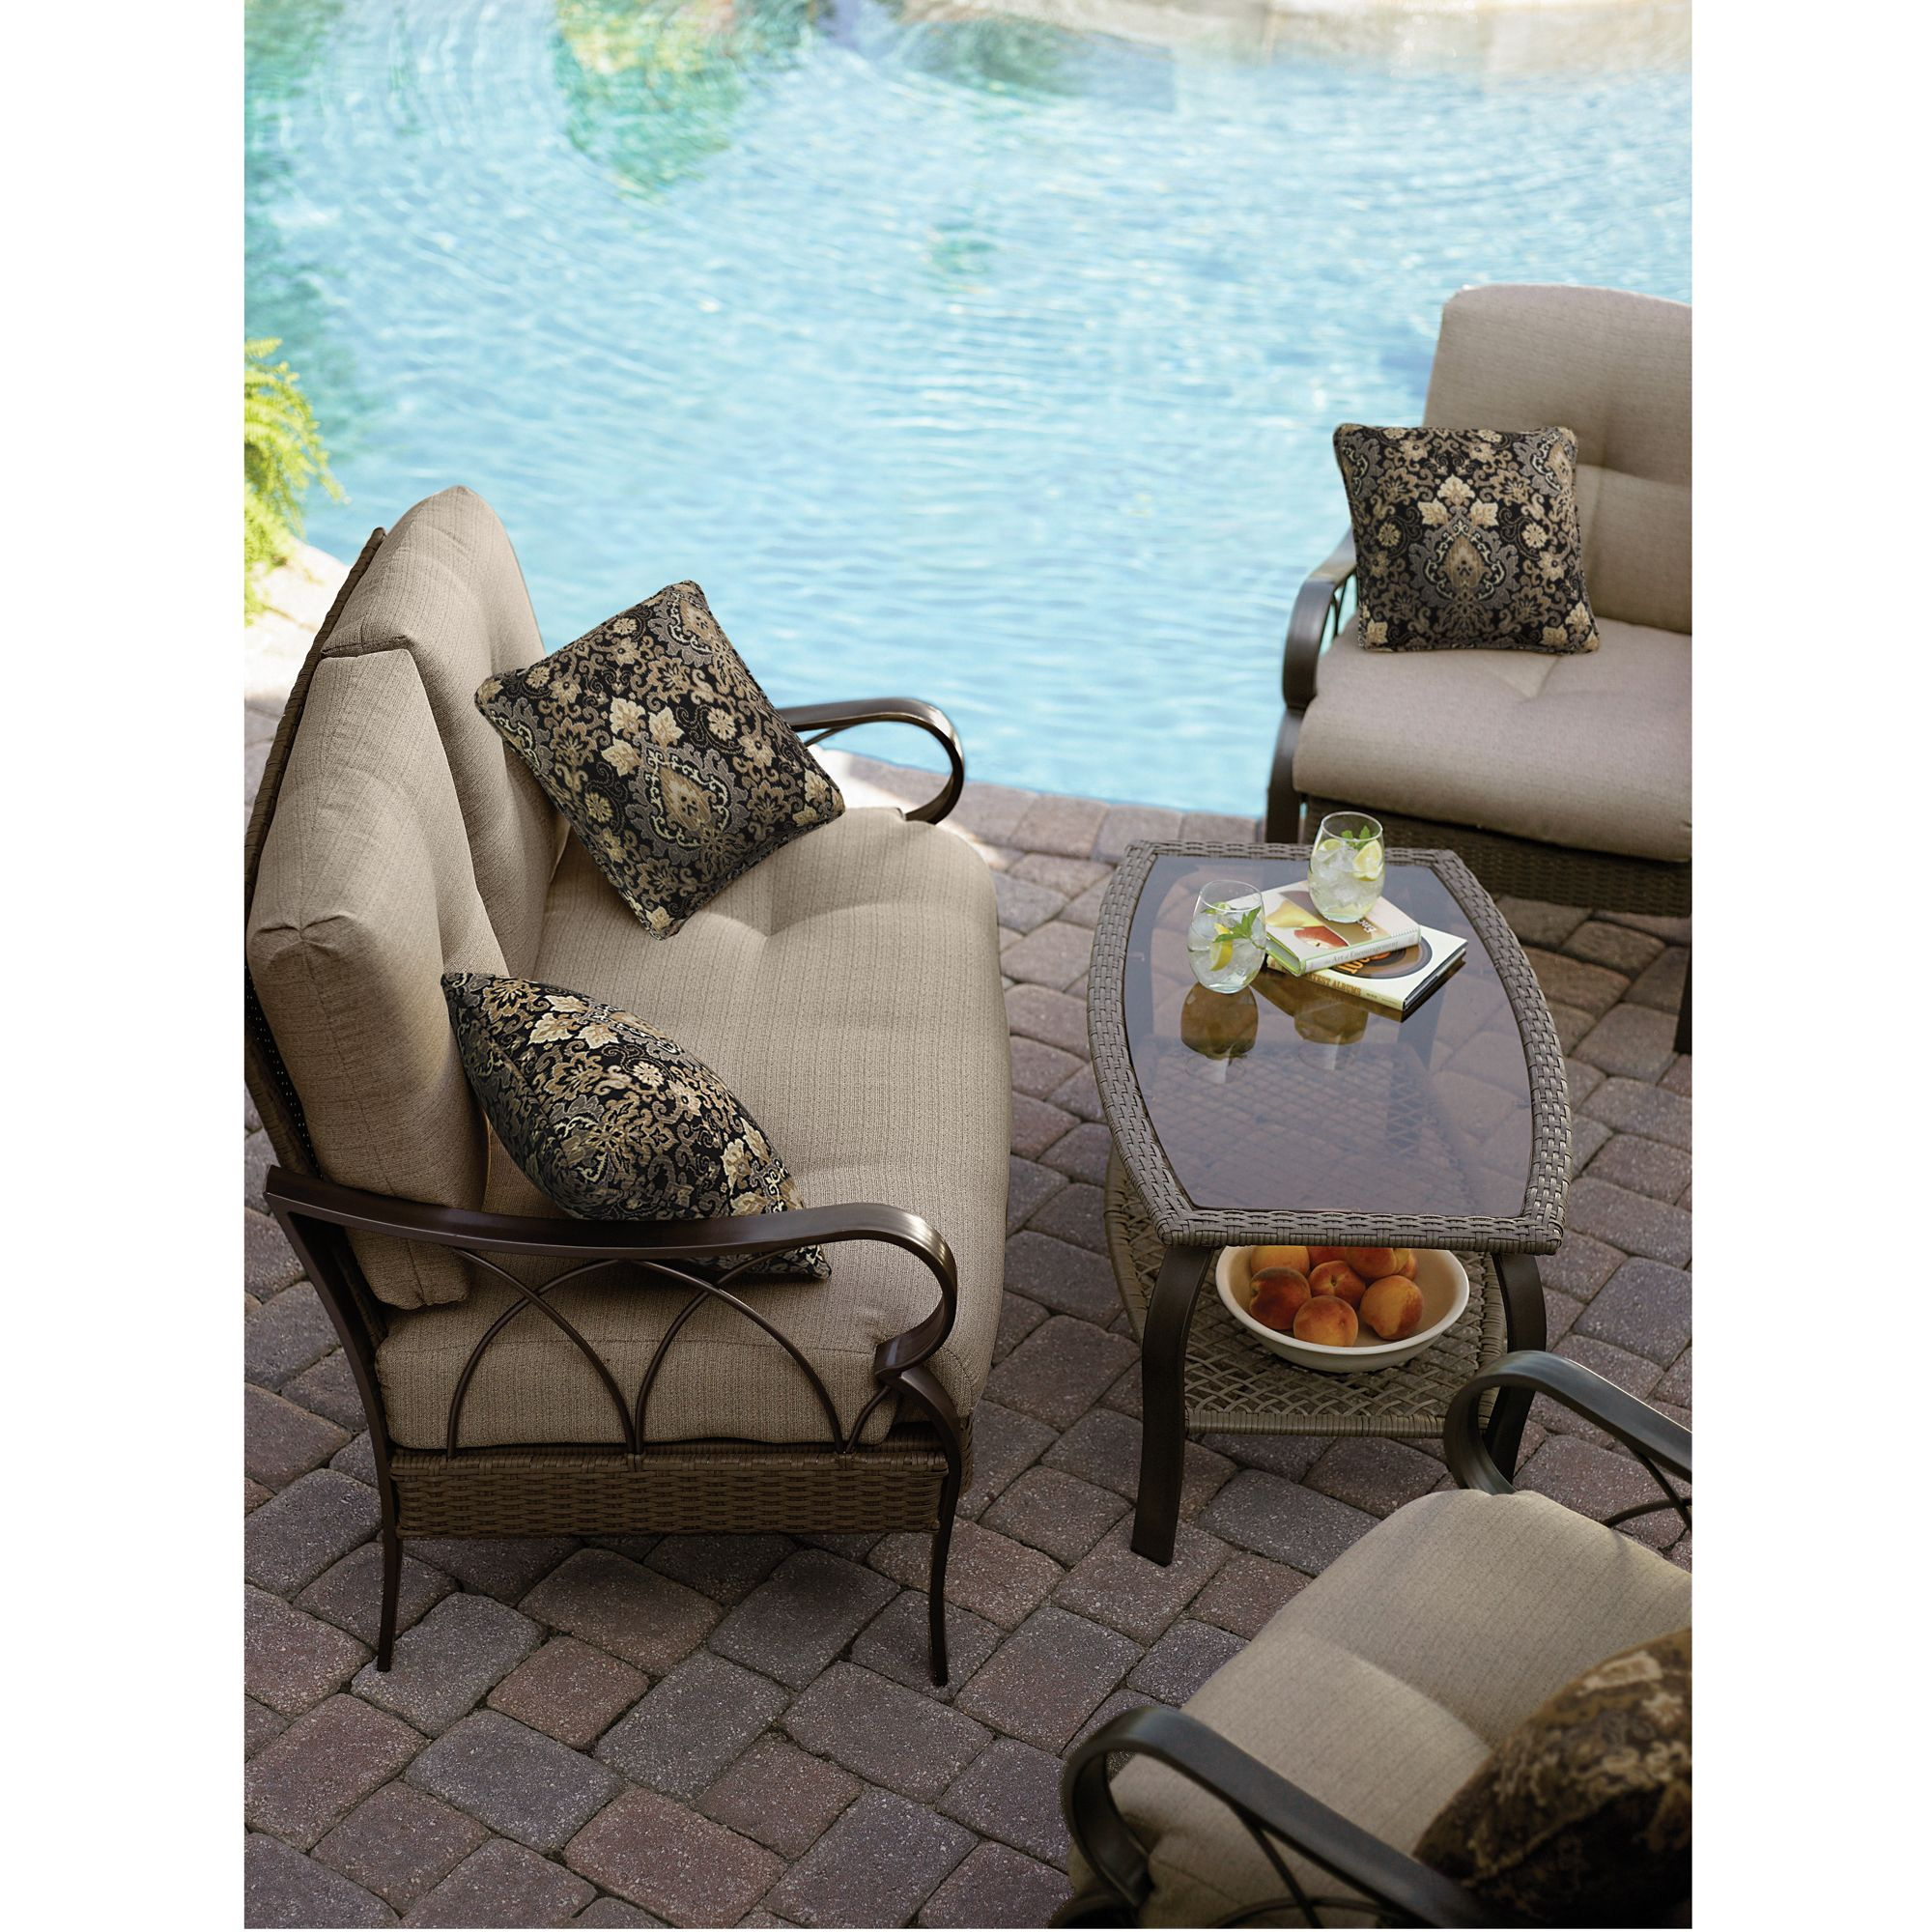 La-Z-Boy Outdoor Logan 4 Pc. Seating Set *Limited Availability